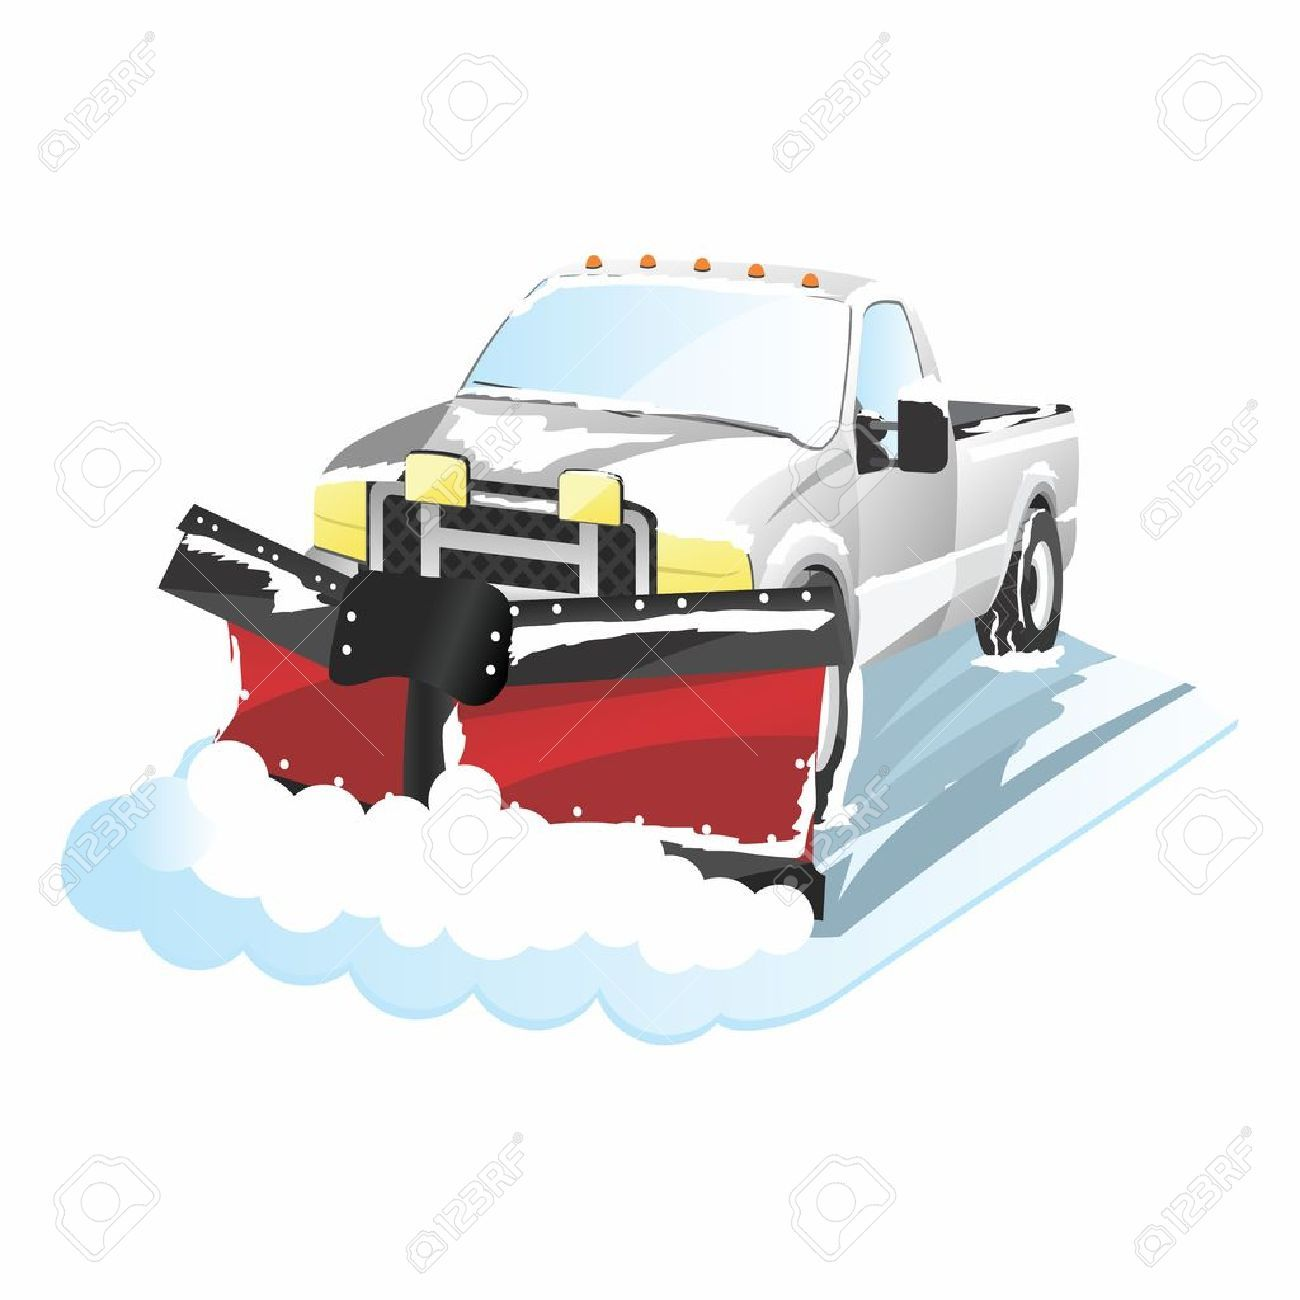 Snow removal clipart free clipart black and white download Snow plow clipart free 4 » Clipart Portal clipart black and white download